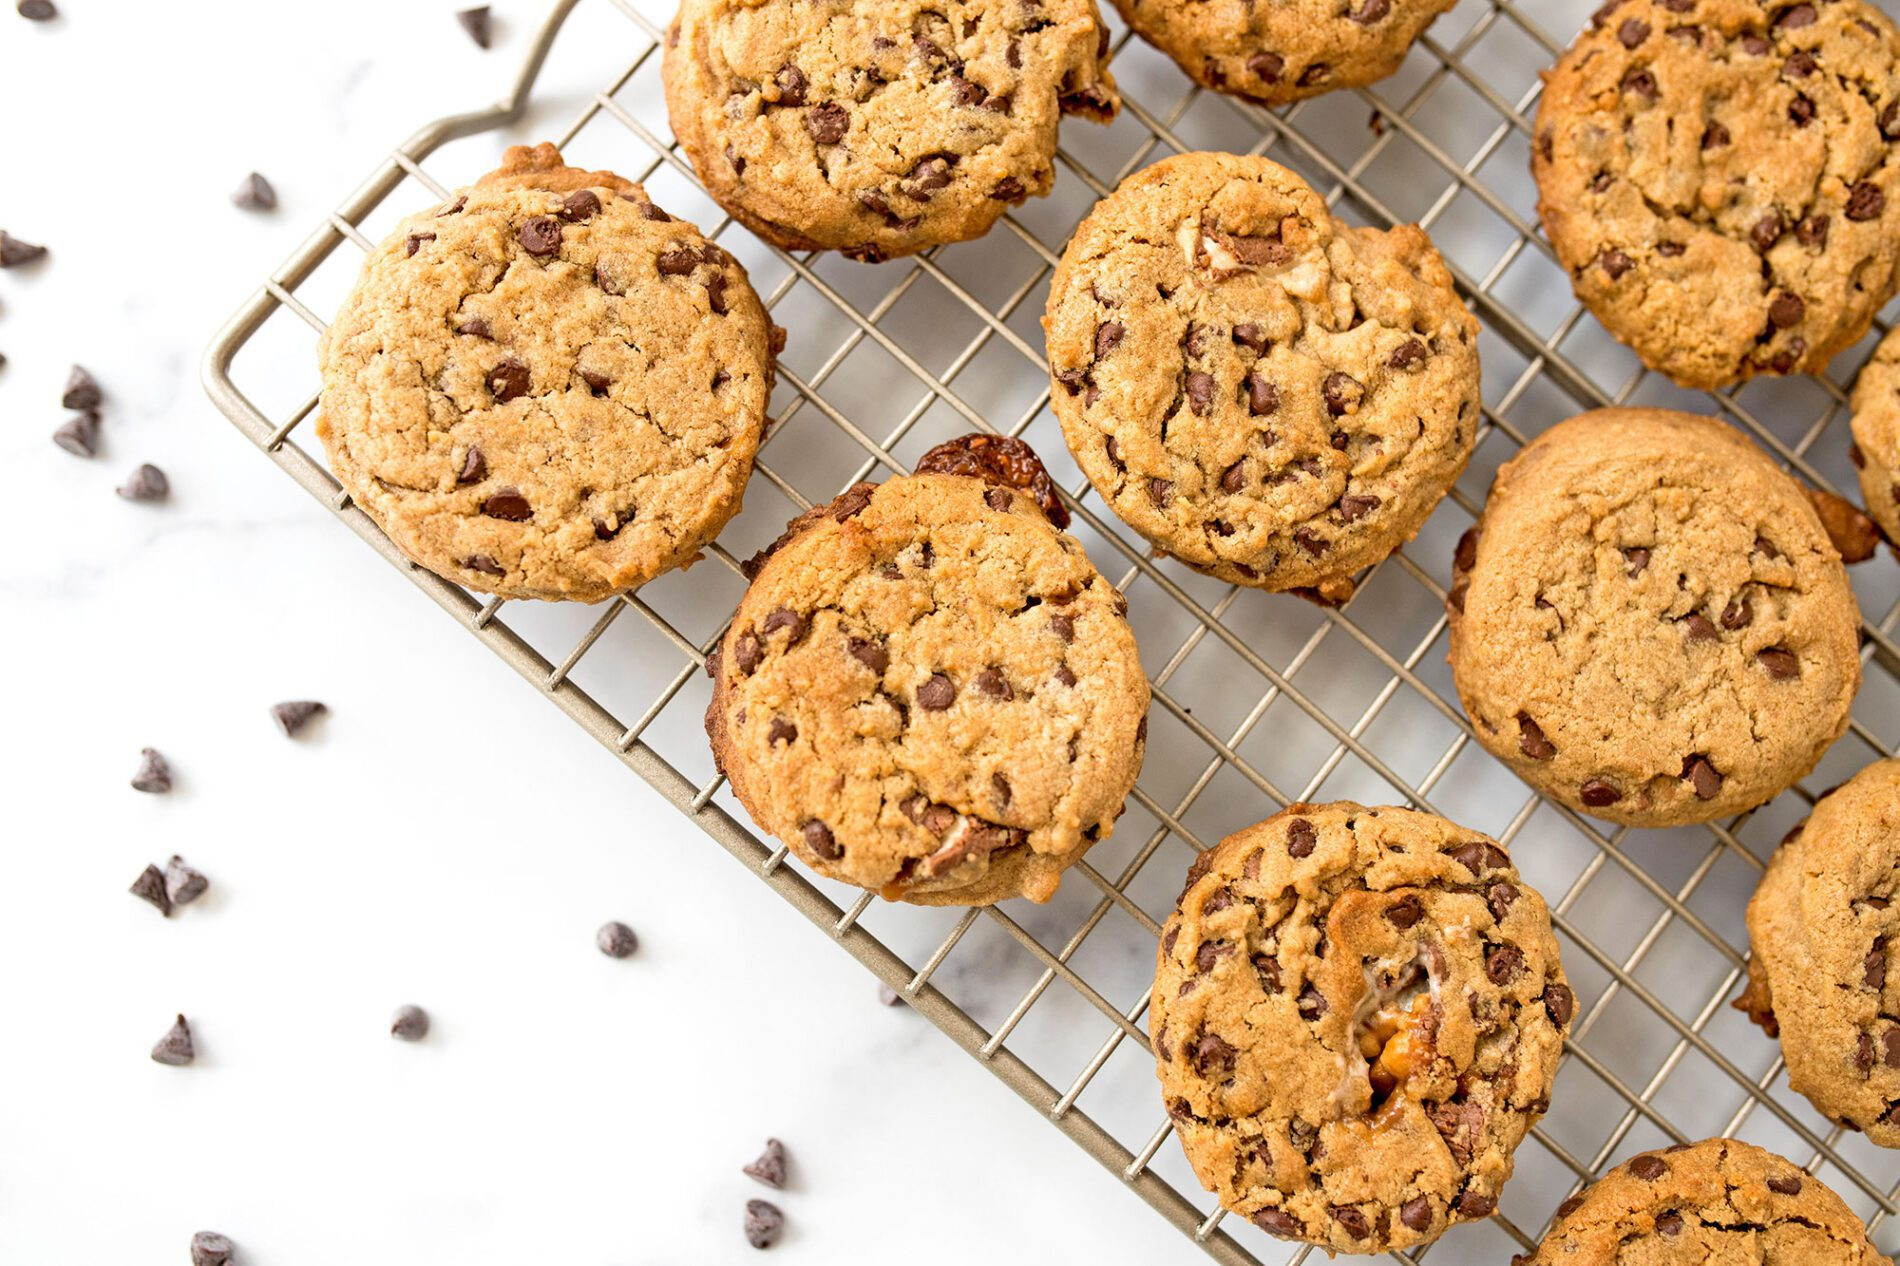 peanut butter chocolate chip snickers cookies on a cooling rack